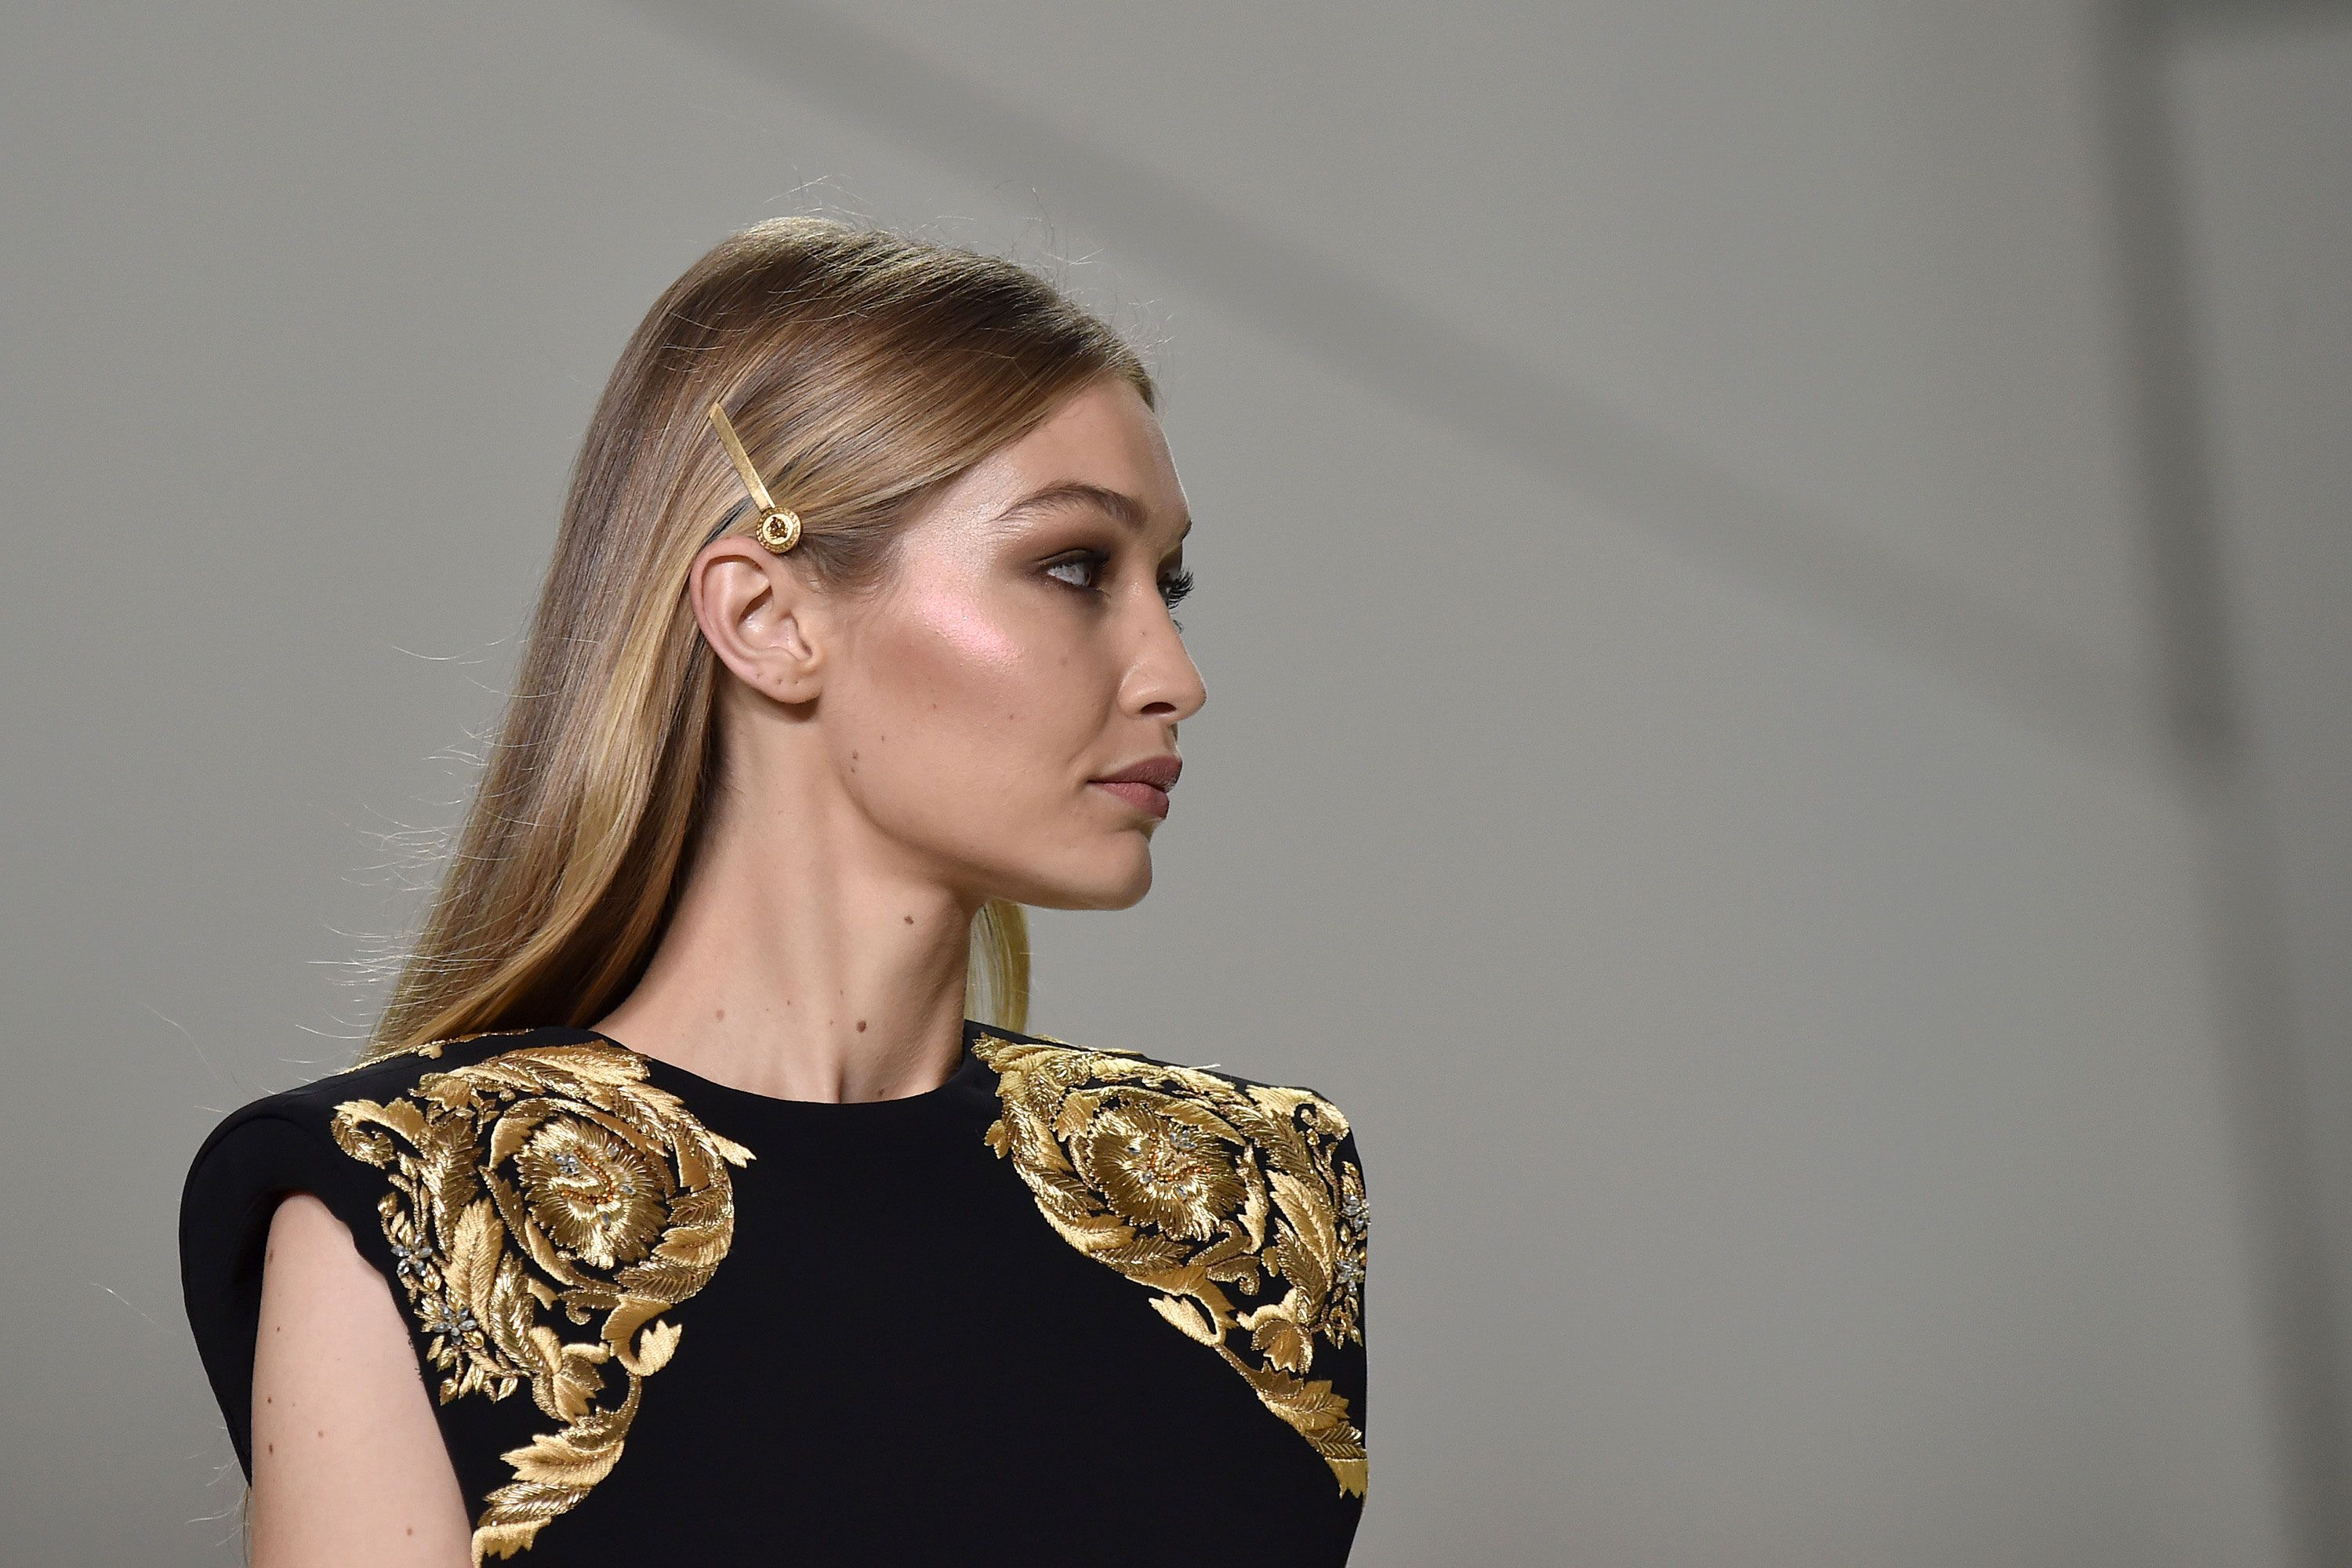 c8347d6ad251 The Best Hair Accessories From the Spring 2018 Runways   Sadie ...